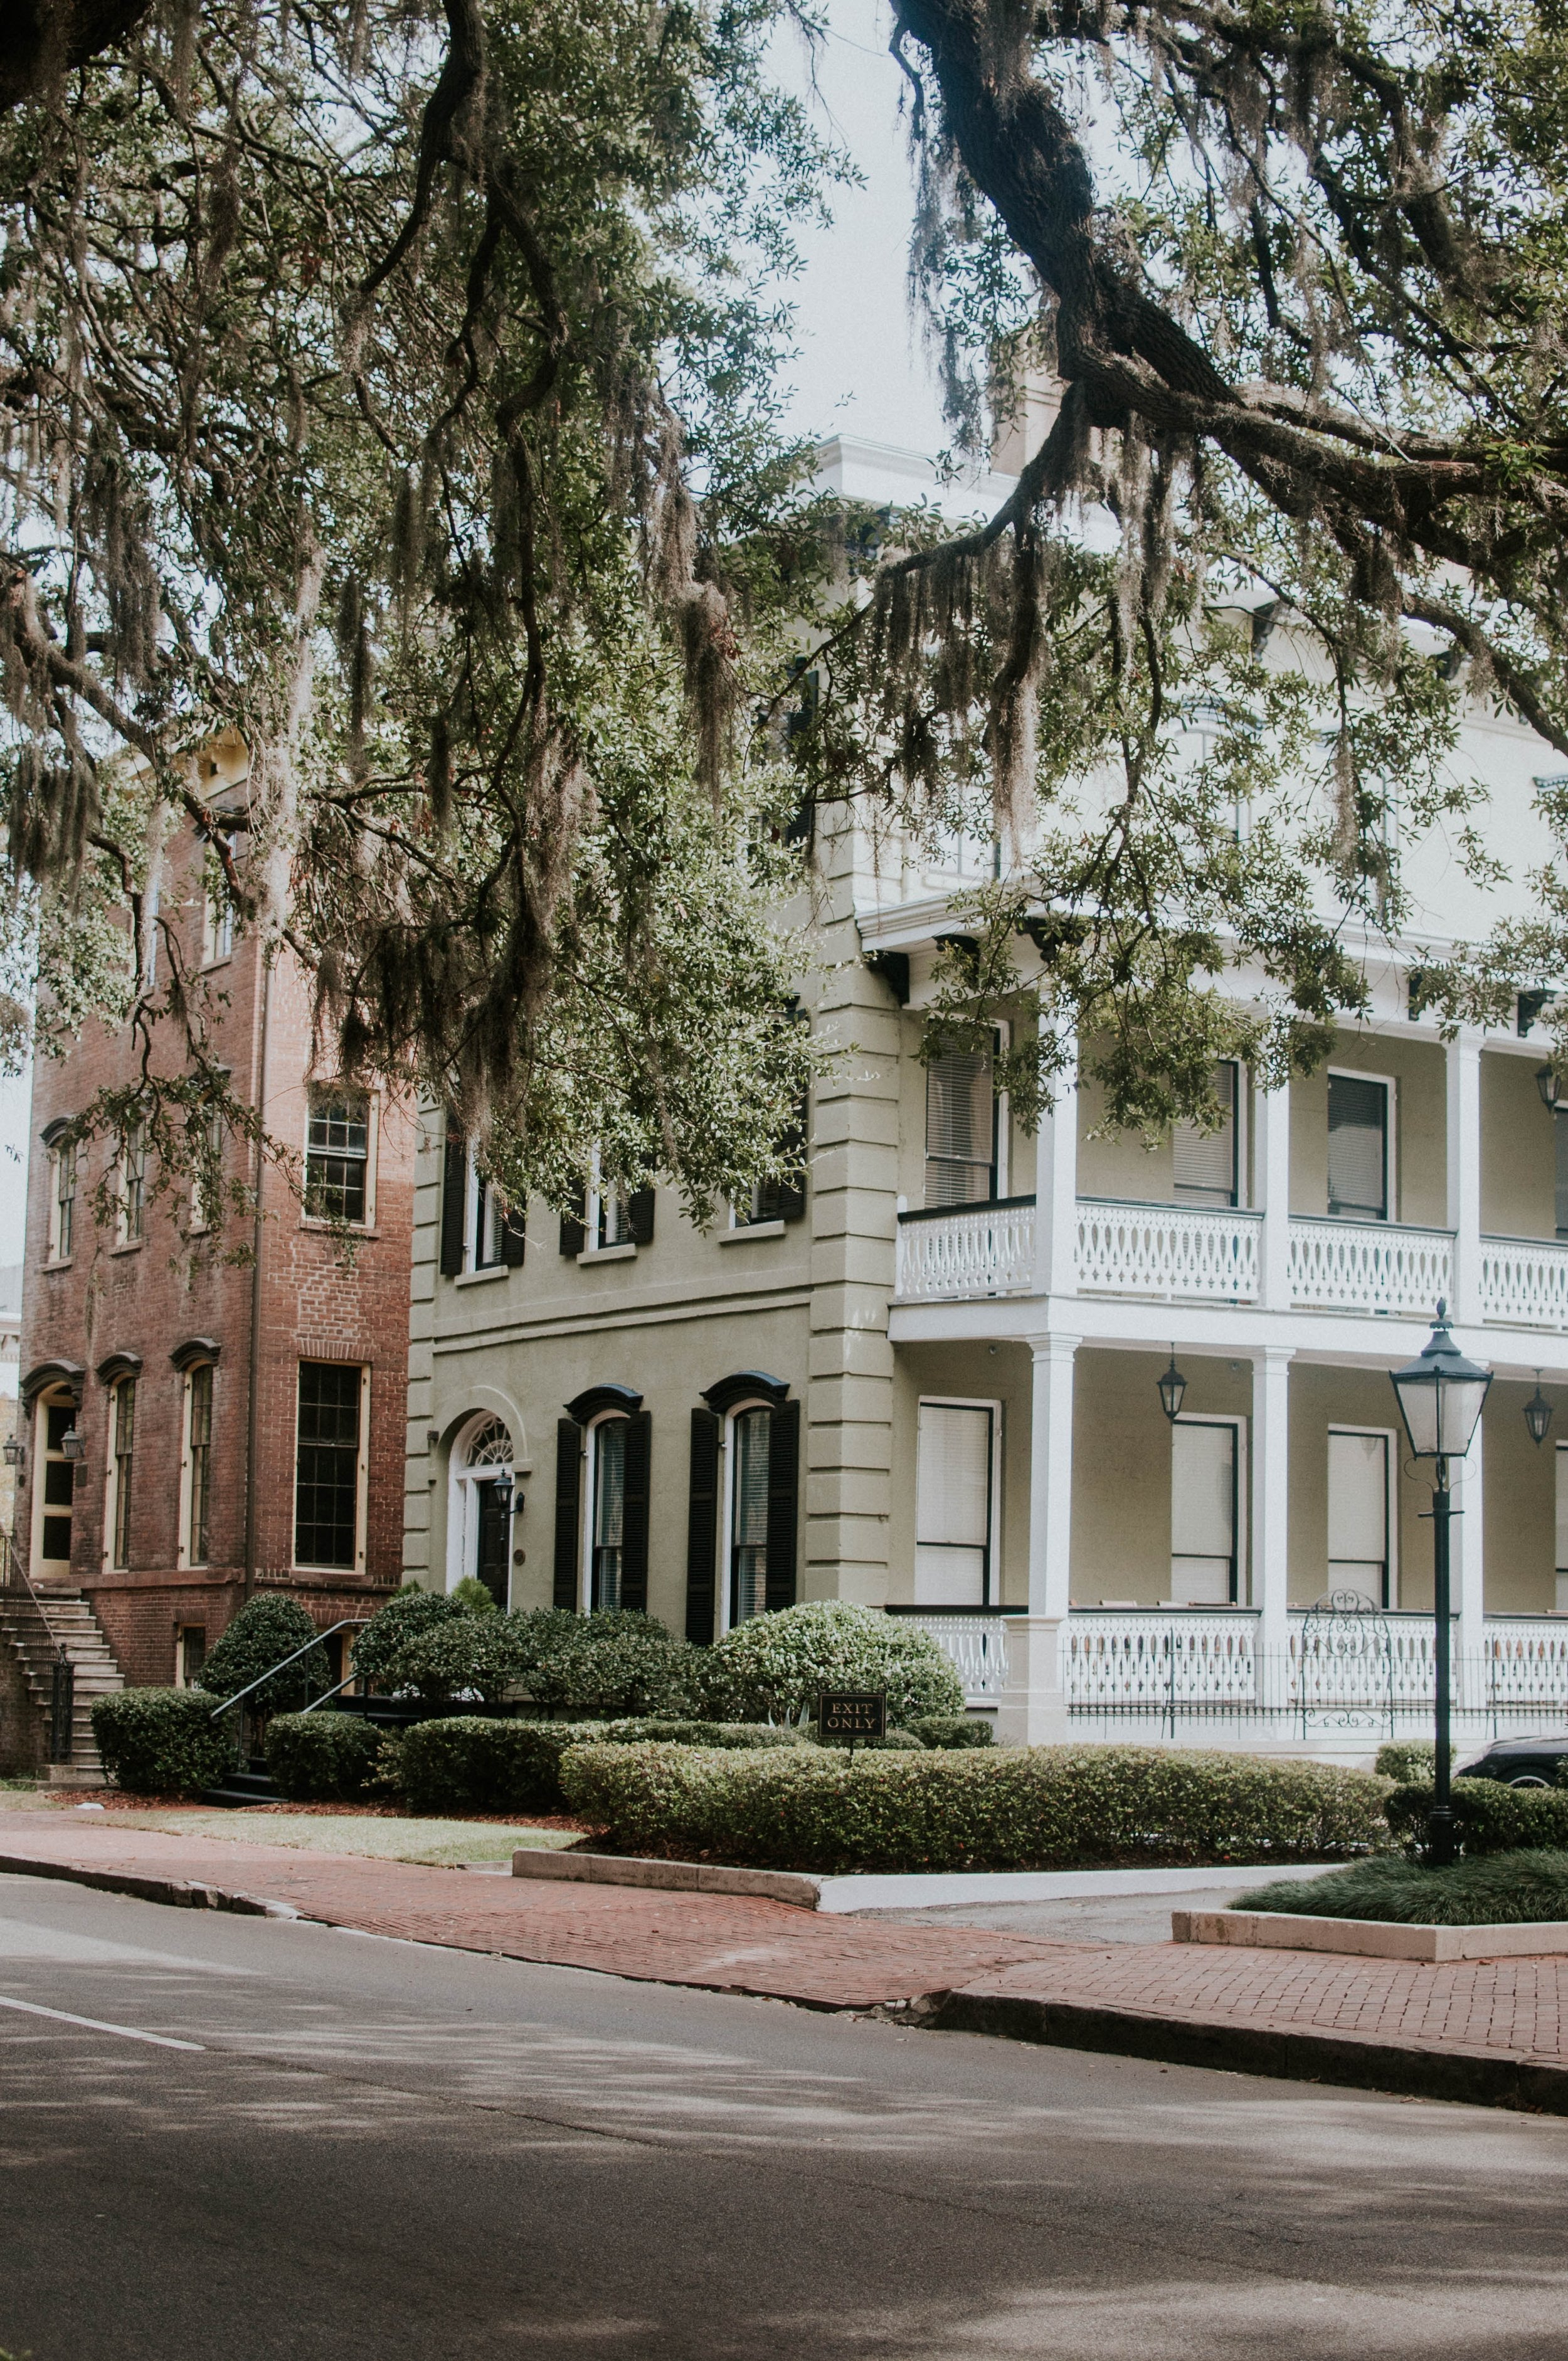 The trees and architecture of Savannah will blow your mind.